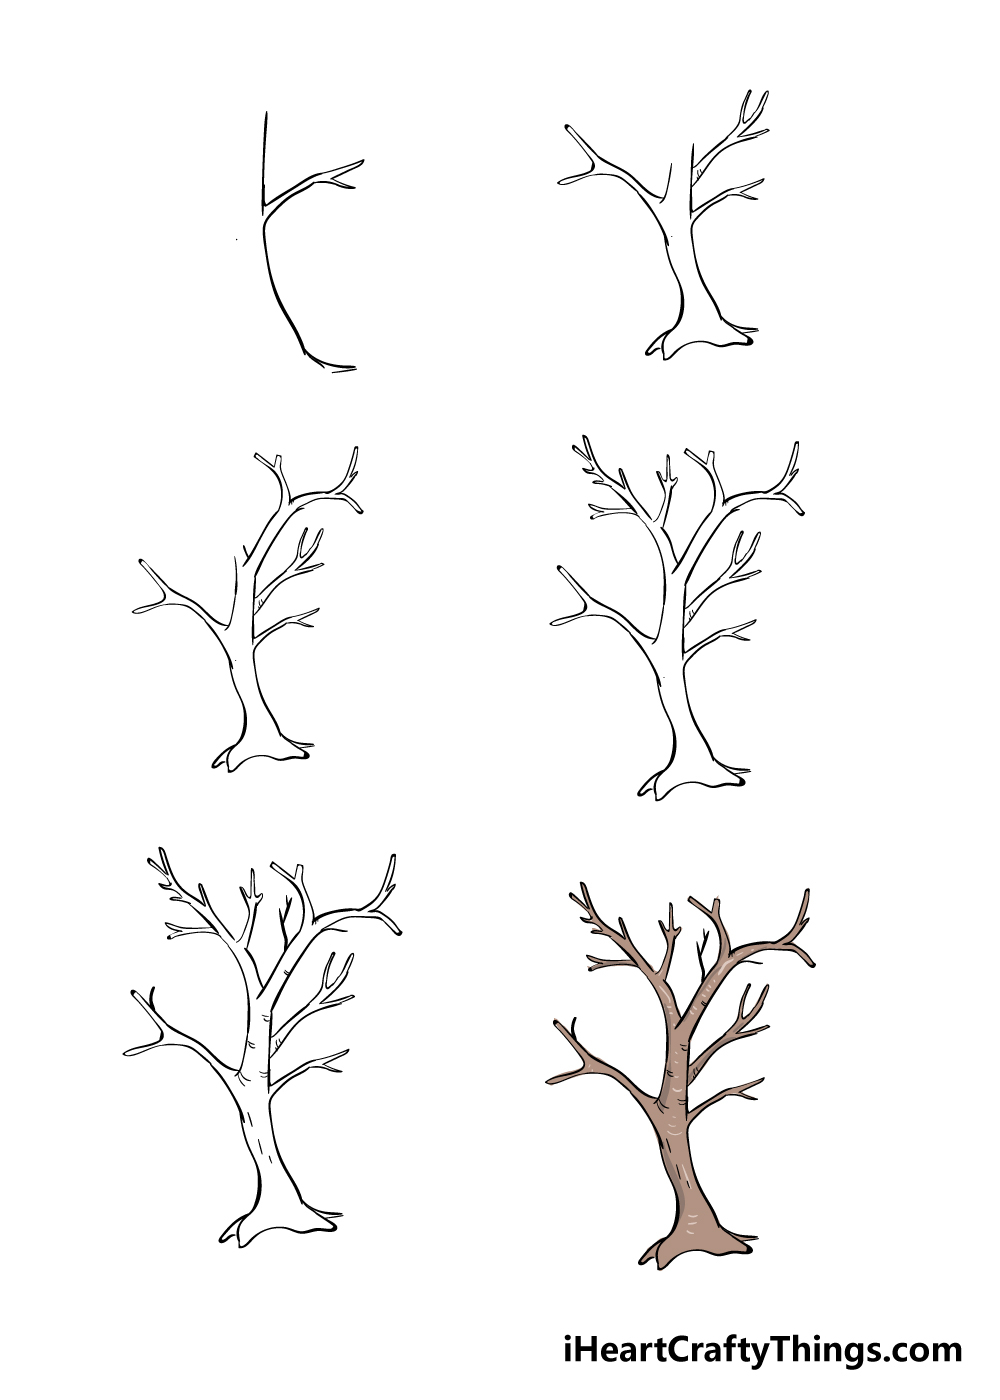 How to Draw Branches in 6 steps